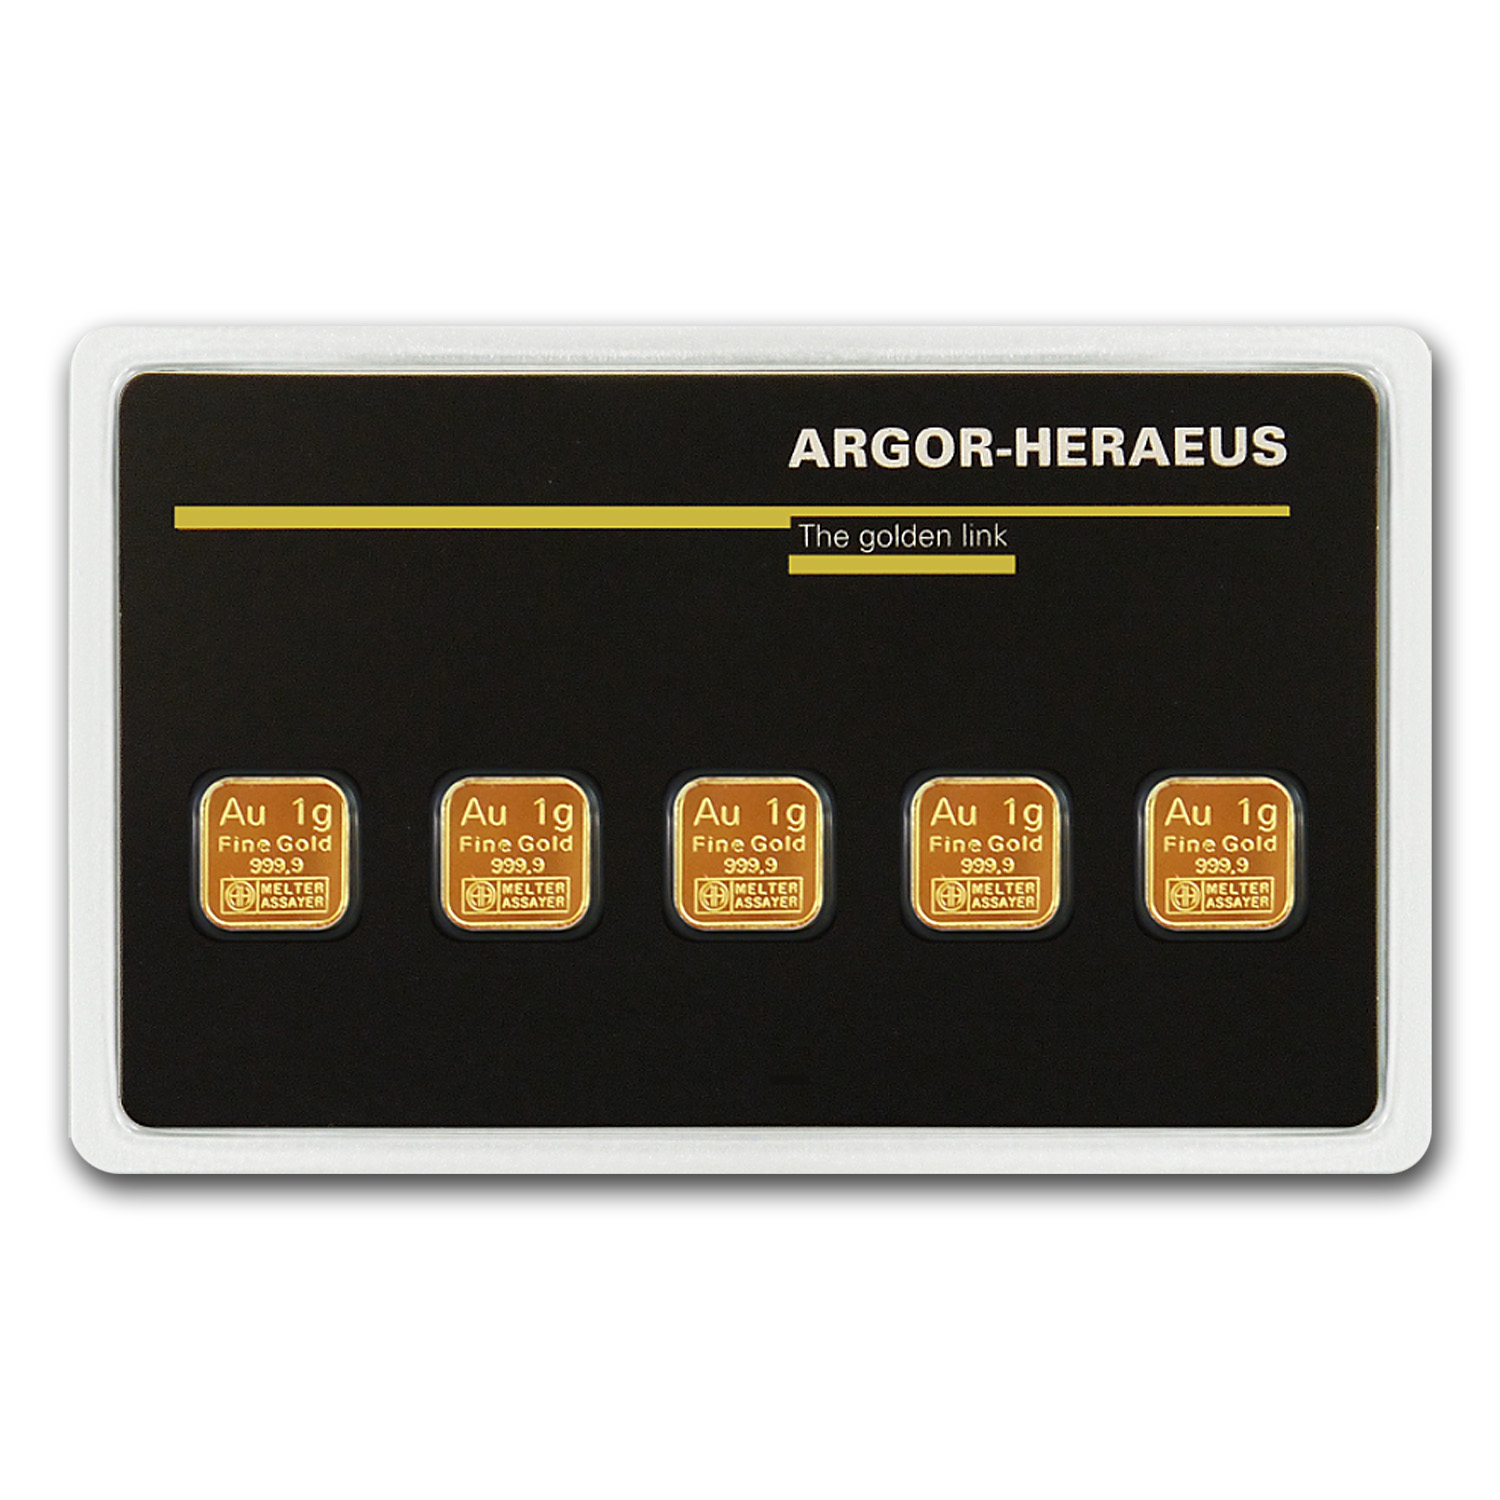 5x 1 gram Gold Bar - Argor-Heraeus (In Assay)